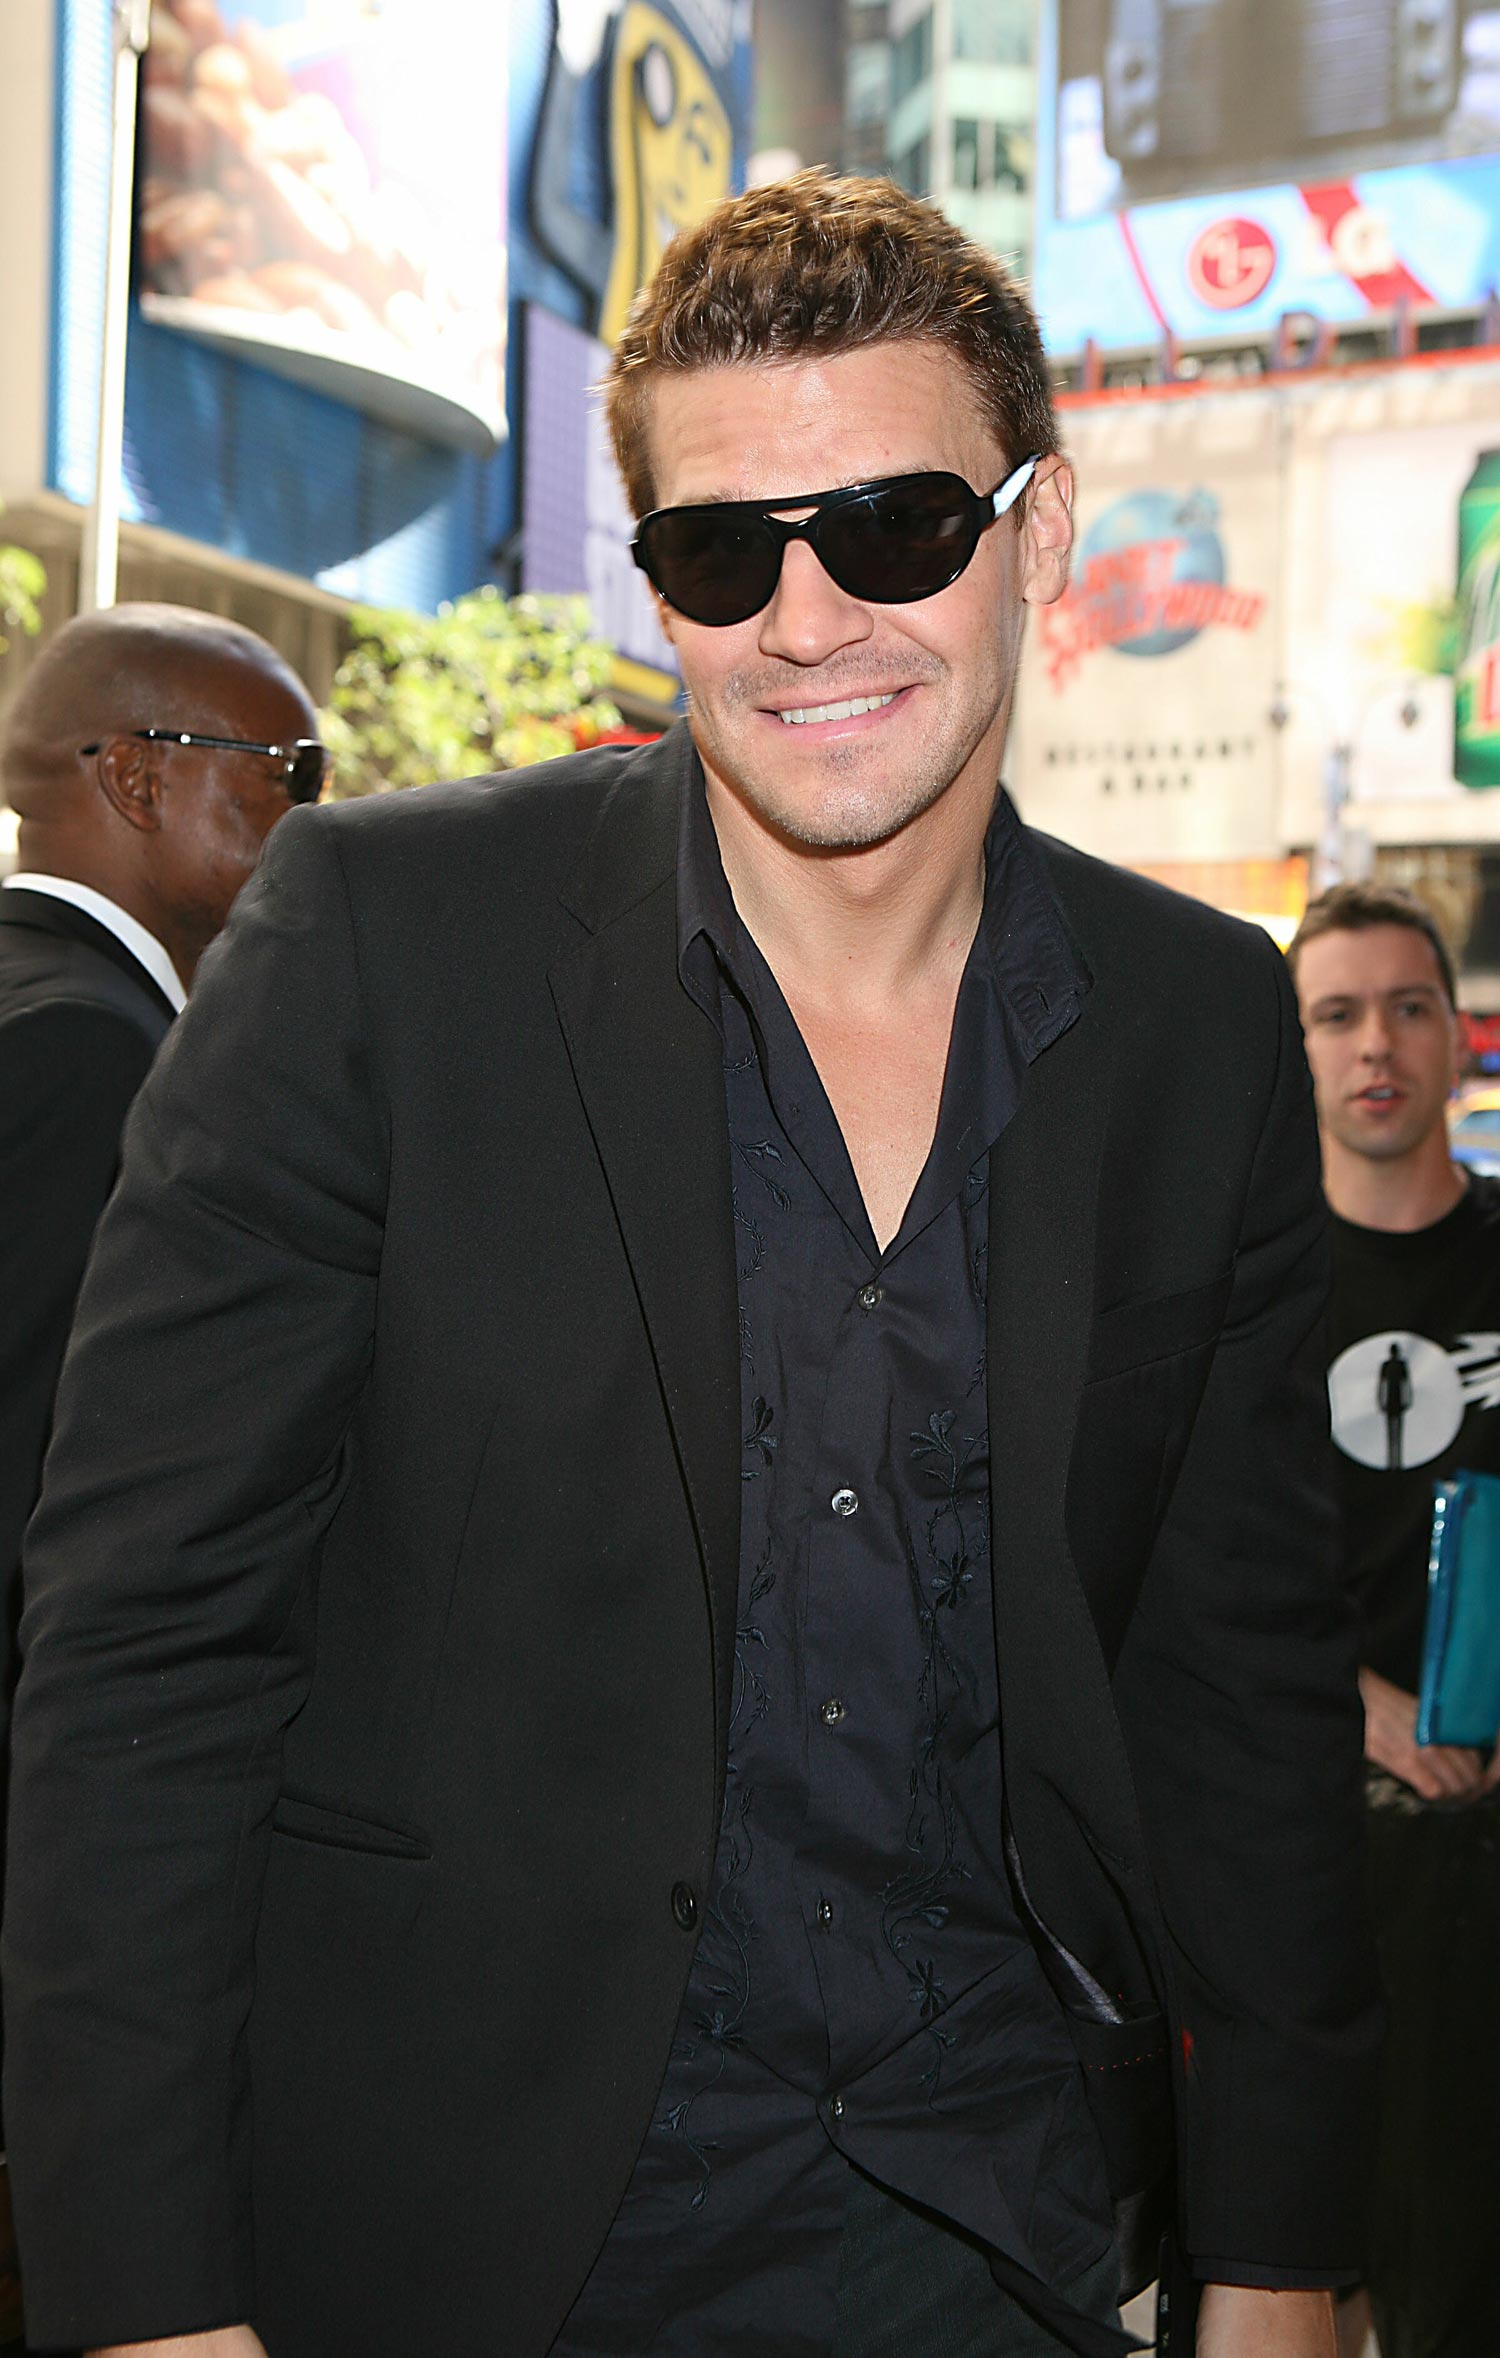 IMG/jpg/david-boreanaz-arriving-MTV-hq-01-1500.jpg